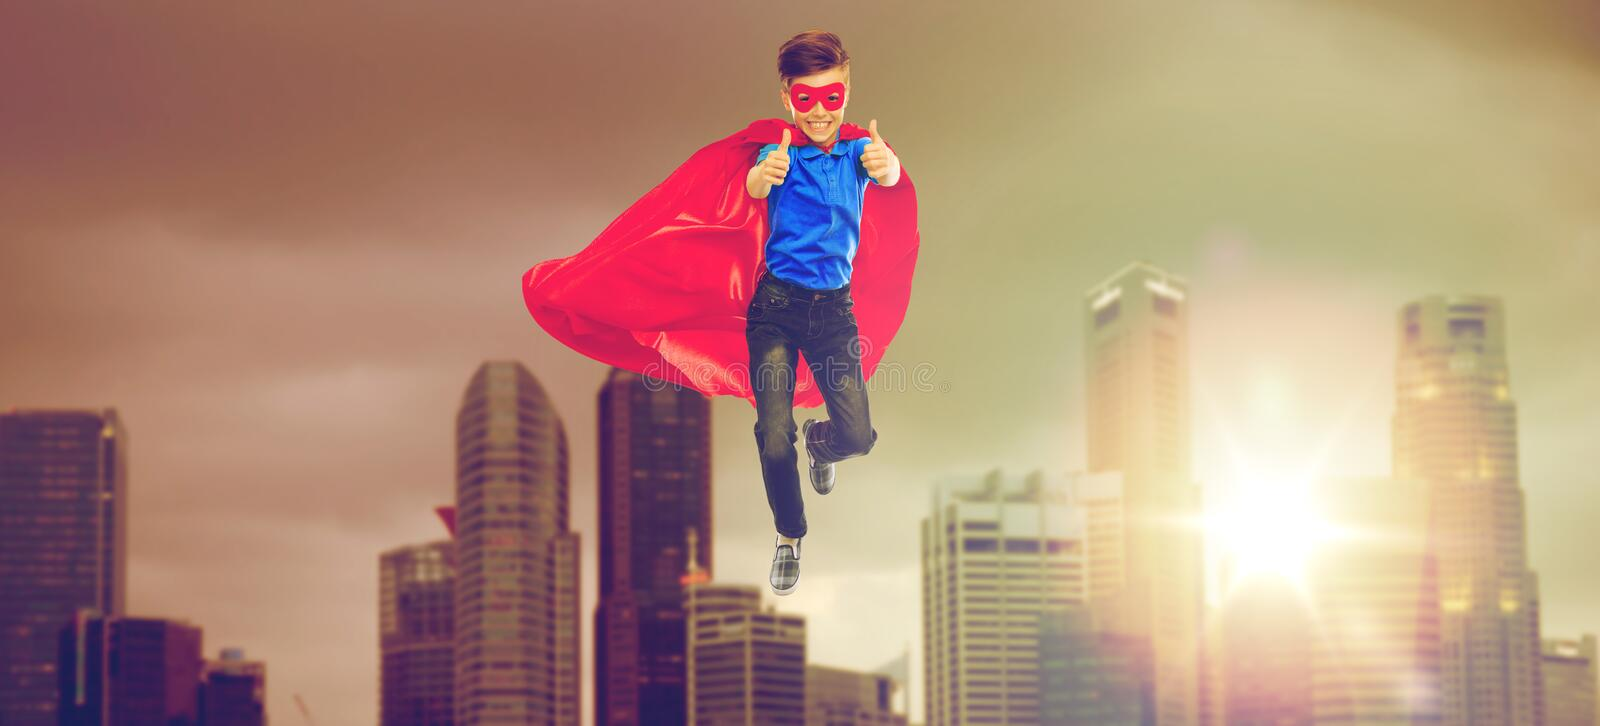 Boy in superhero cape and mask showing thumbs up royalty free stock images